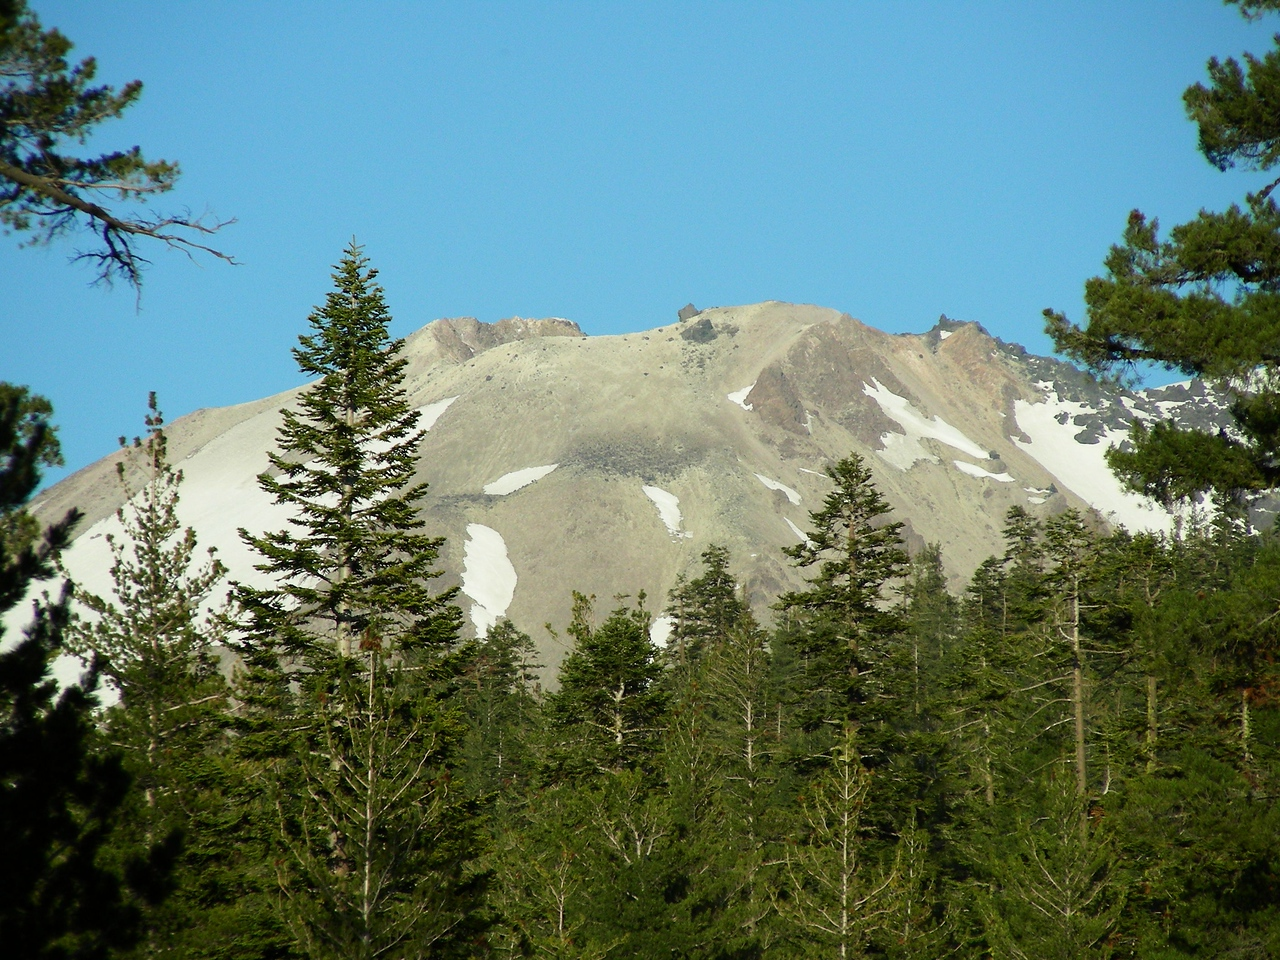 Evening hike West side of Loomis Peak - Views of Mt Lassen | May 23, 2009